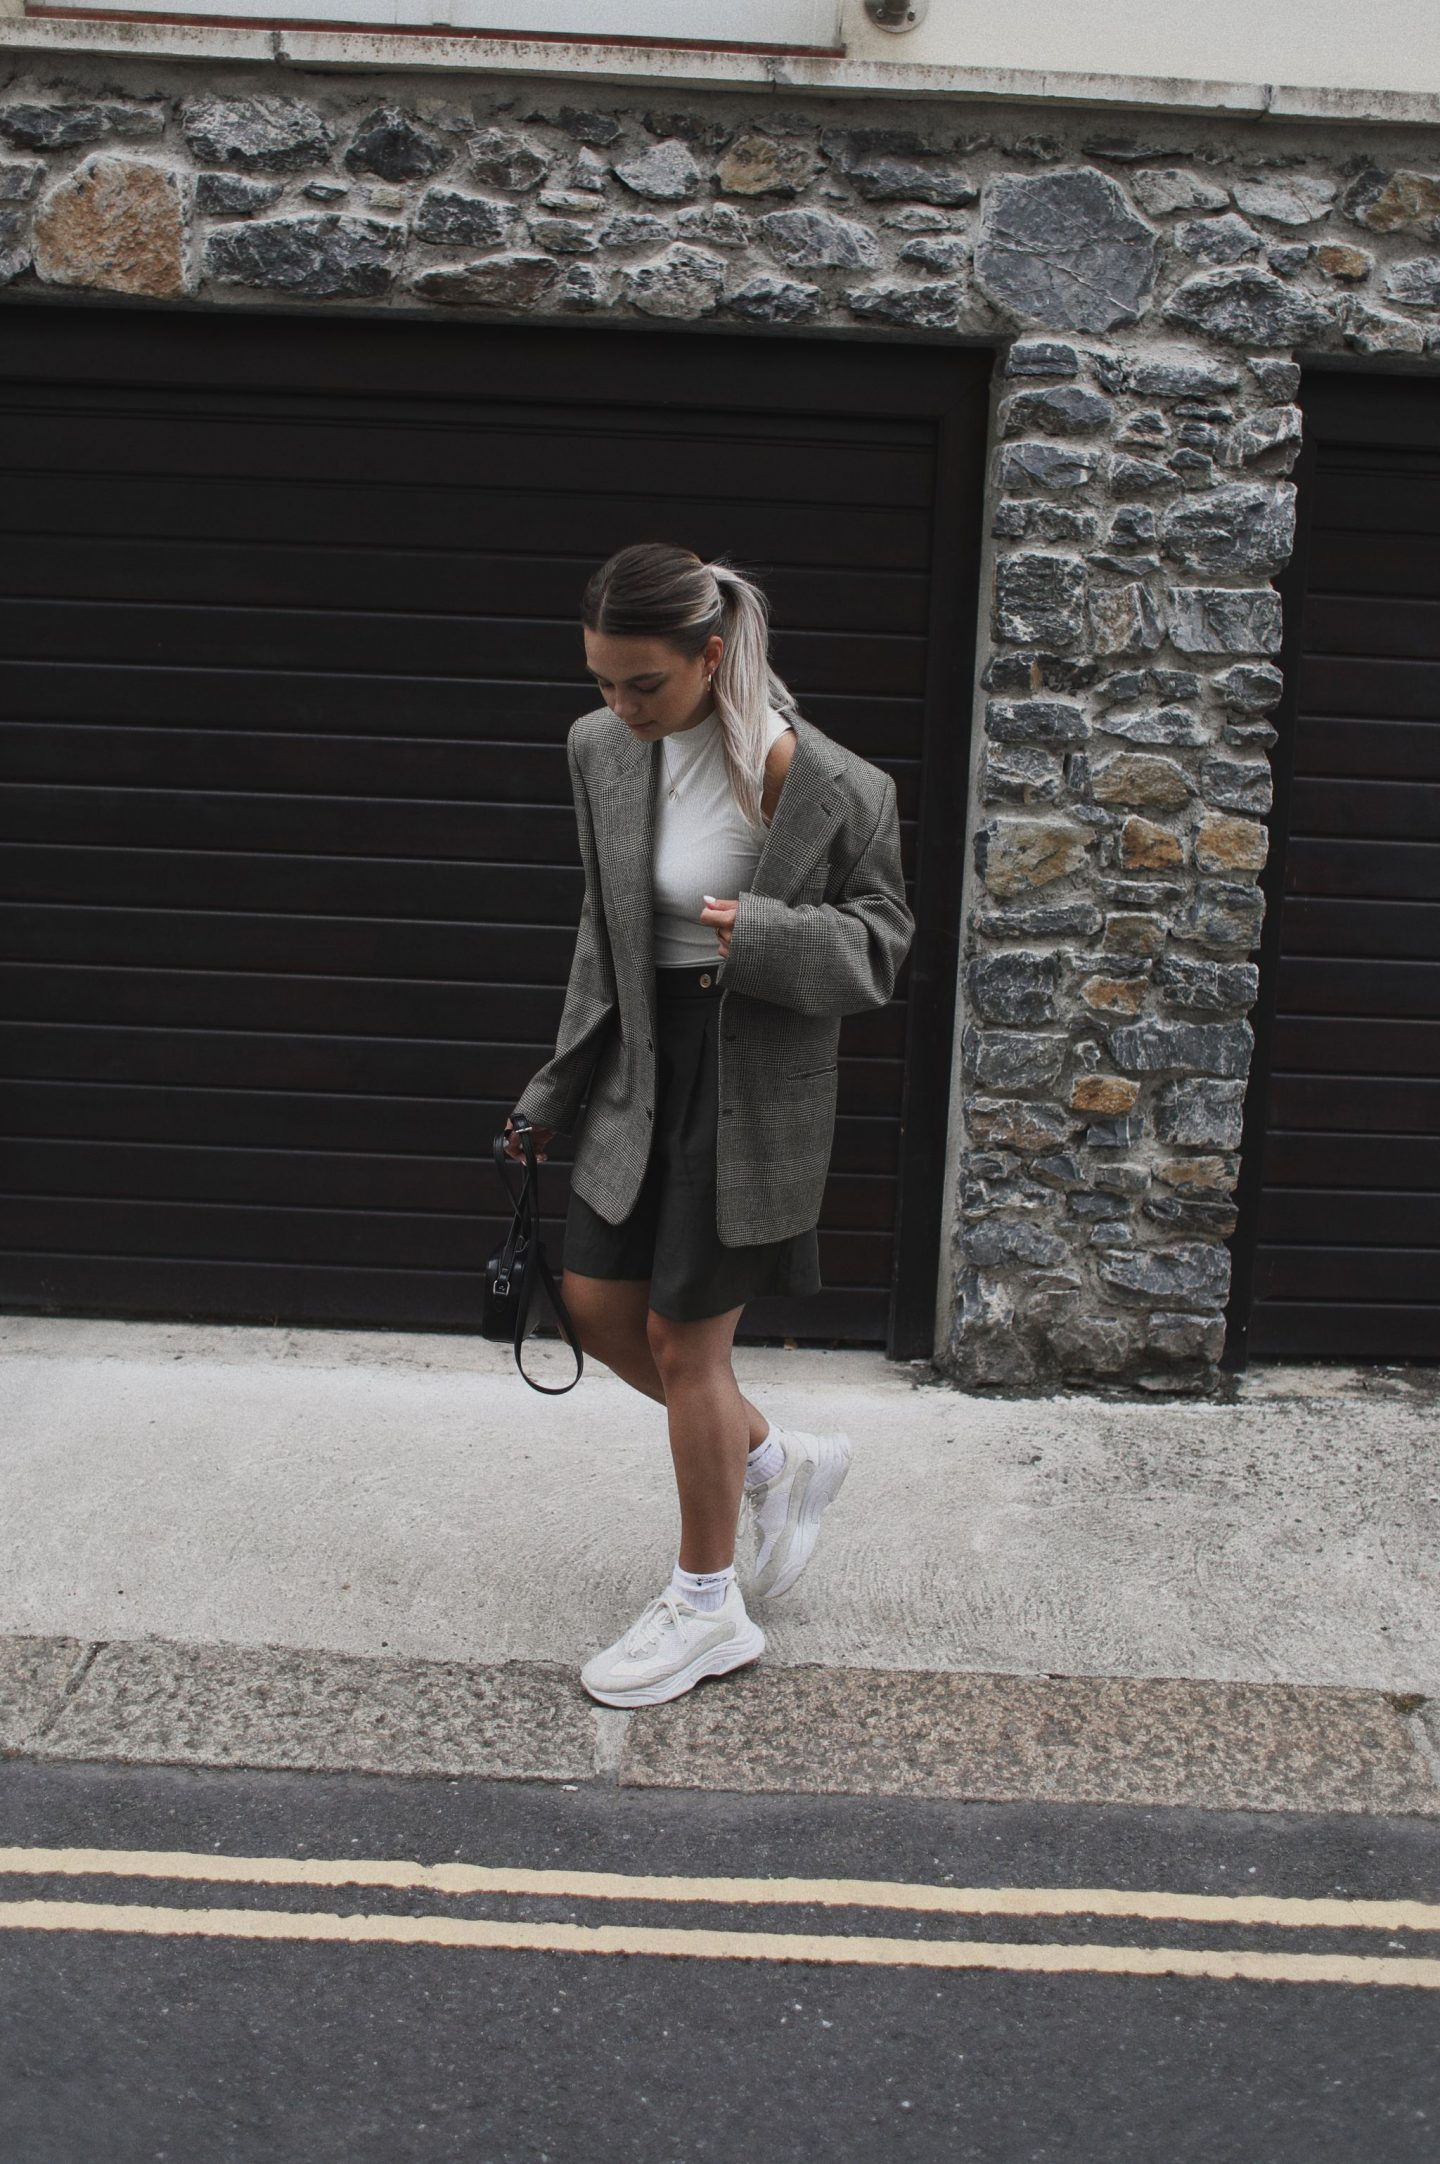 The 90s called… the said its time to rock the oversized blazer and shorts look…